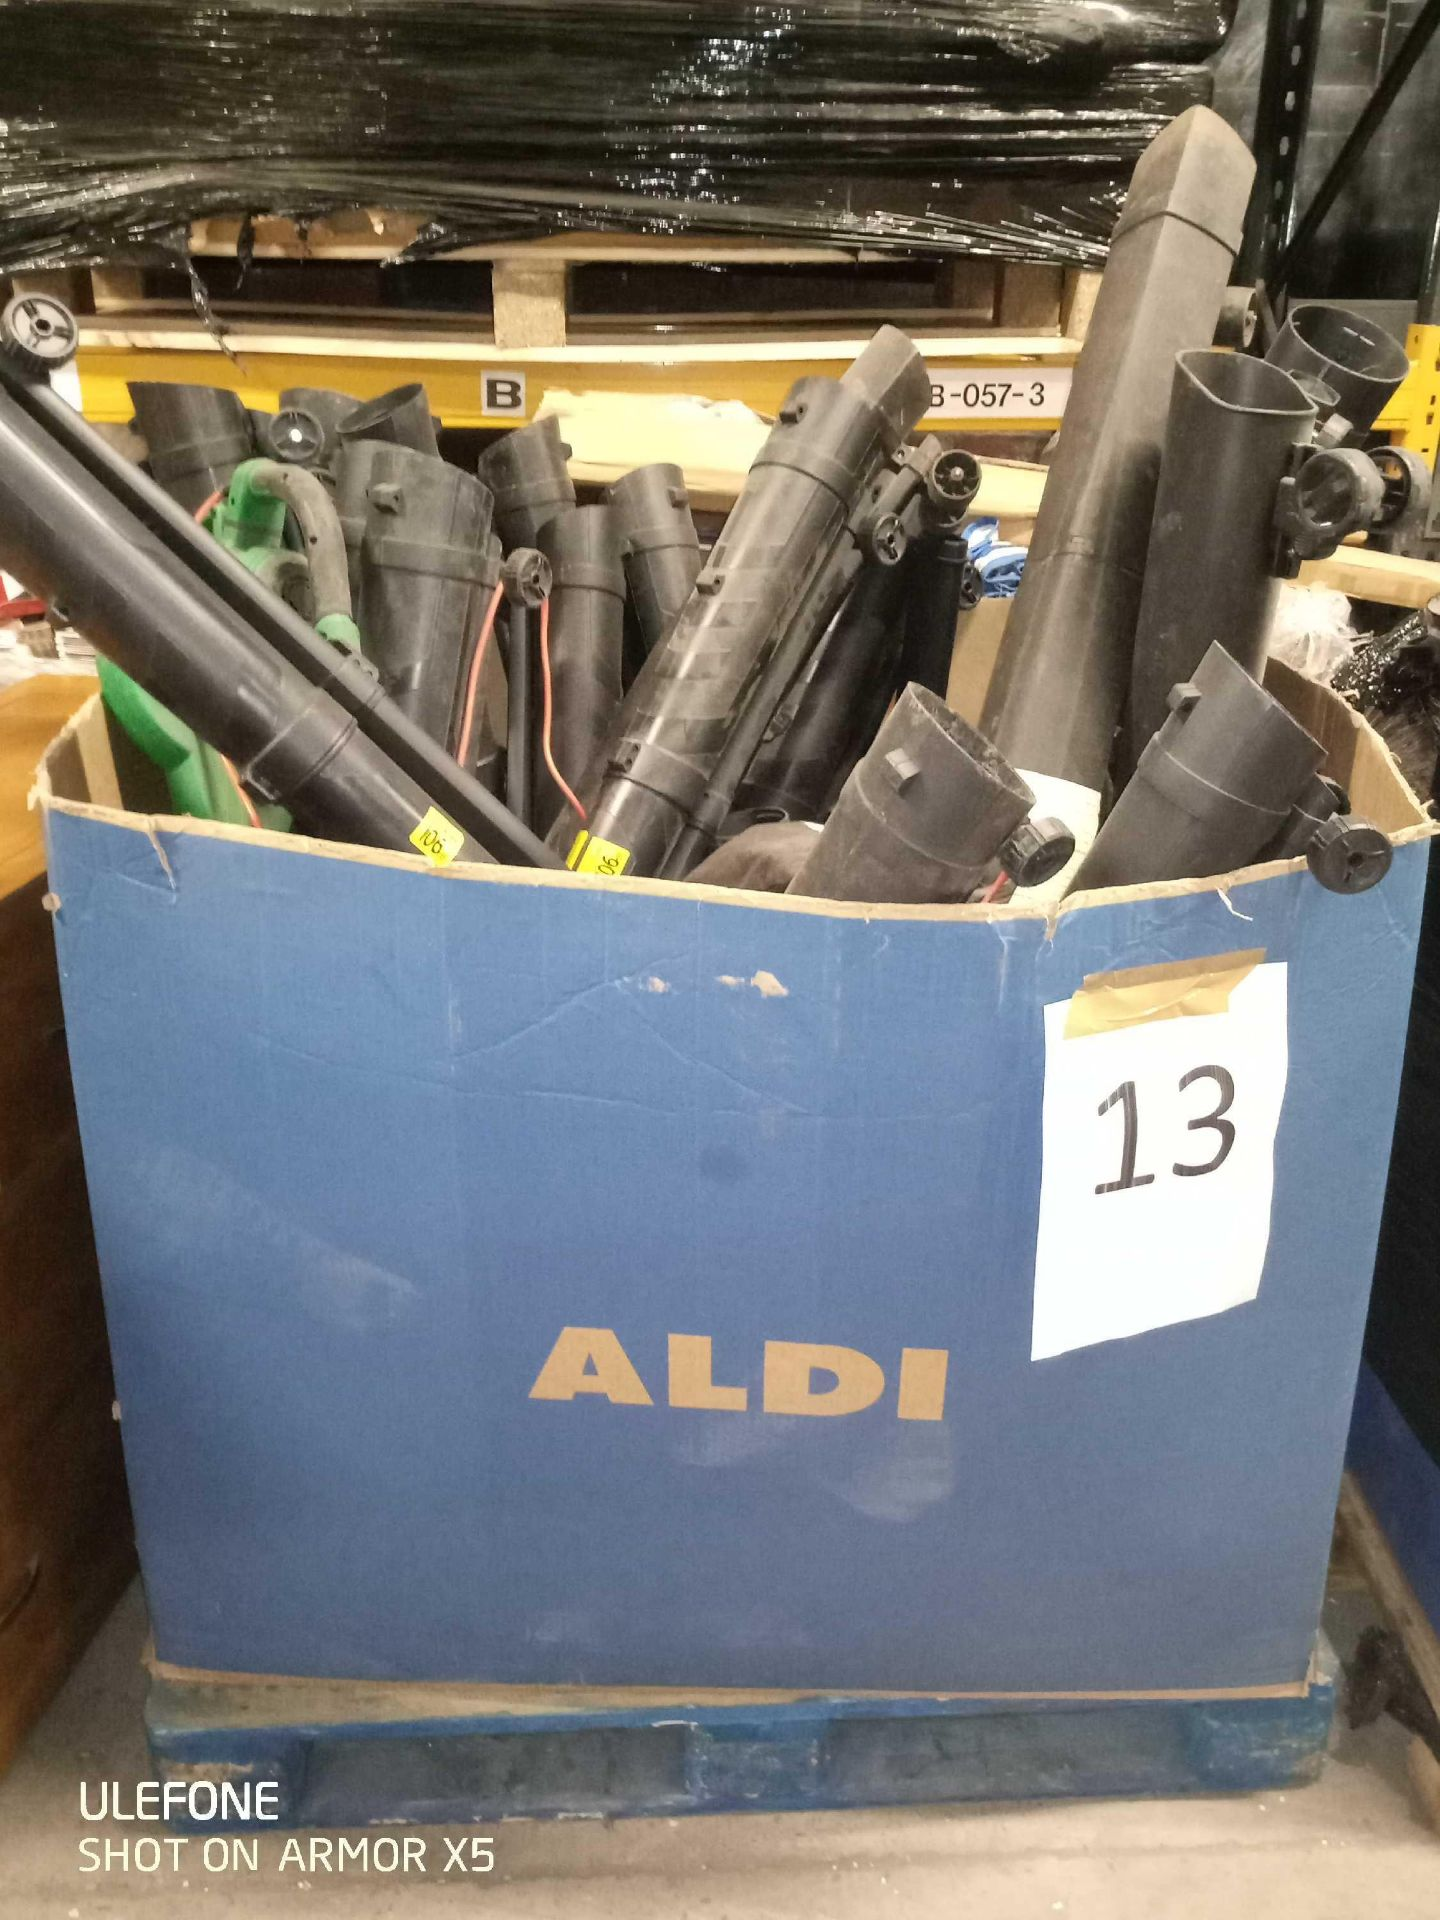 RRP 600 Pallet Of Unboxed Ferrex And Gardenline Leaf Blowers - Image 2 of 2